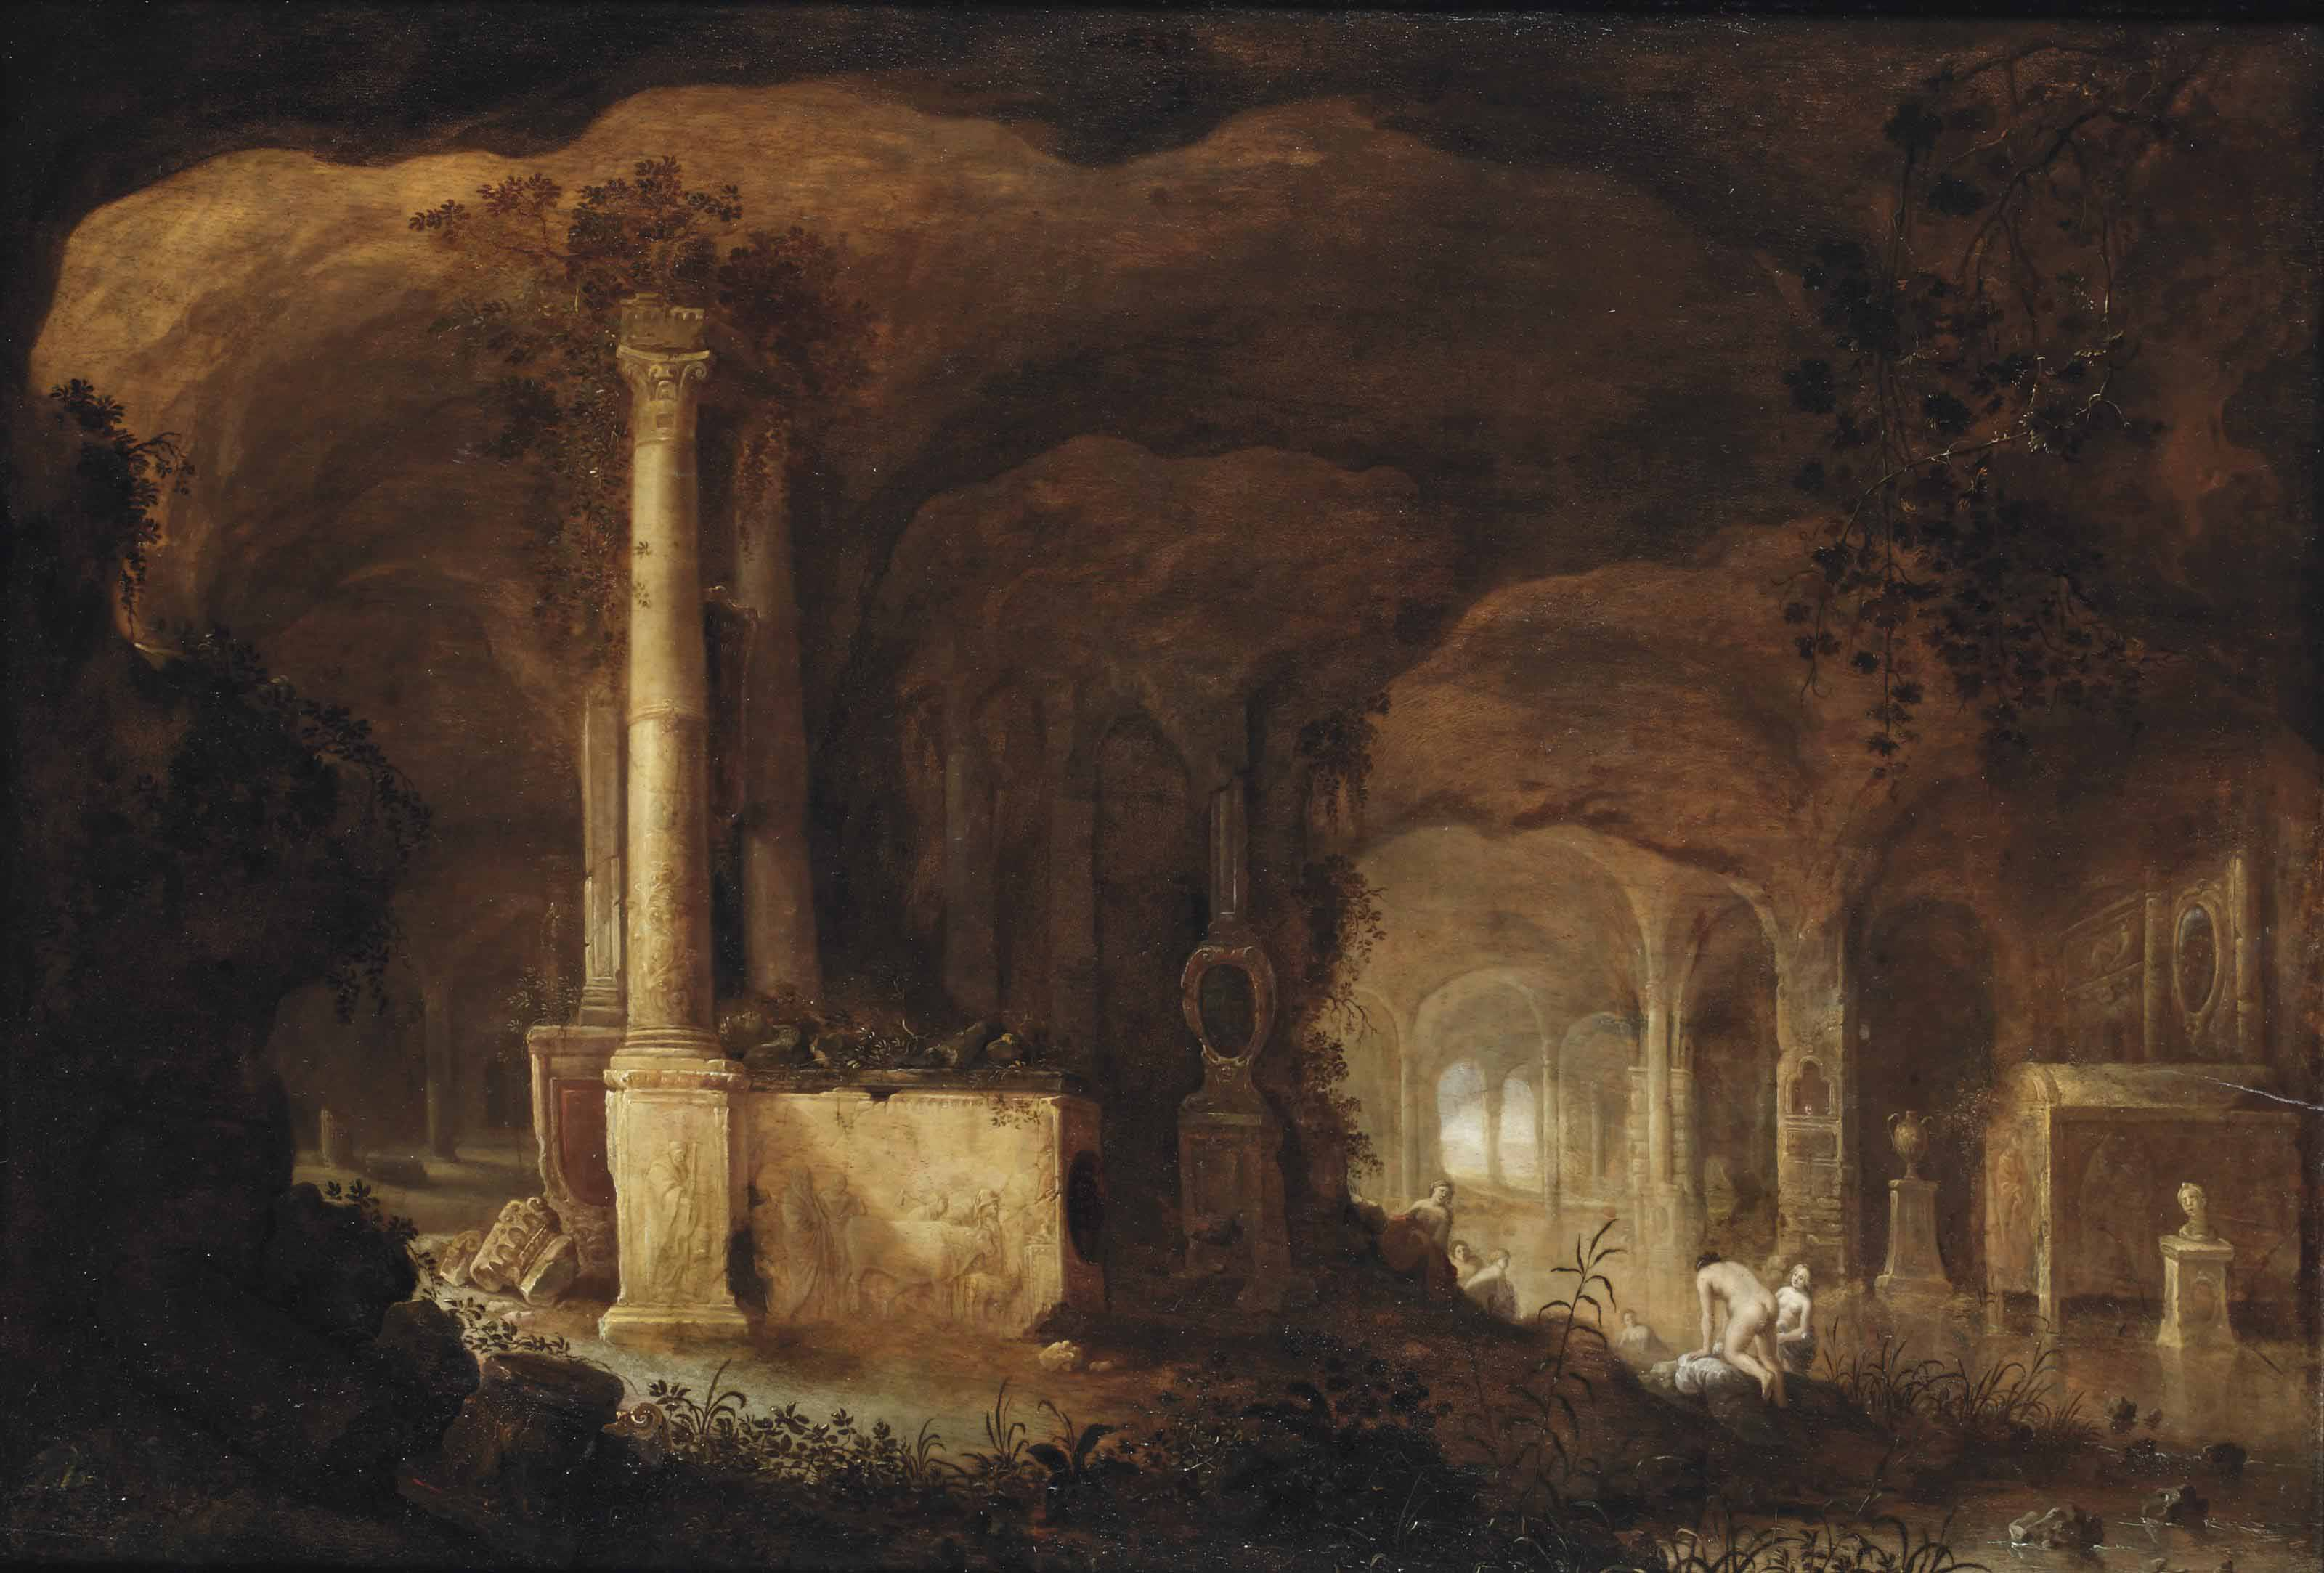 A grotto with bathing women